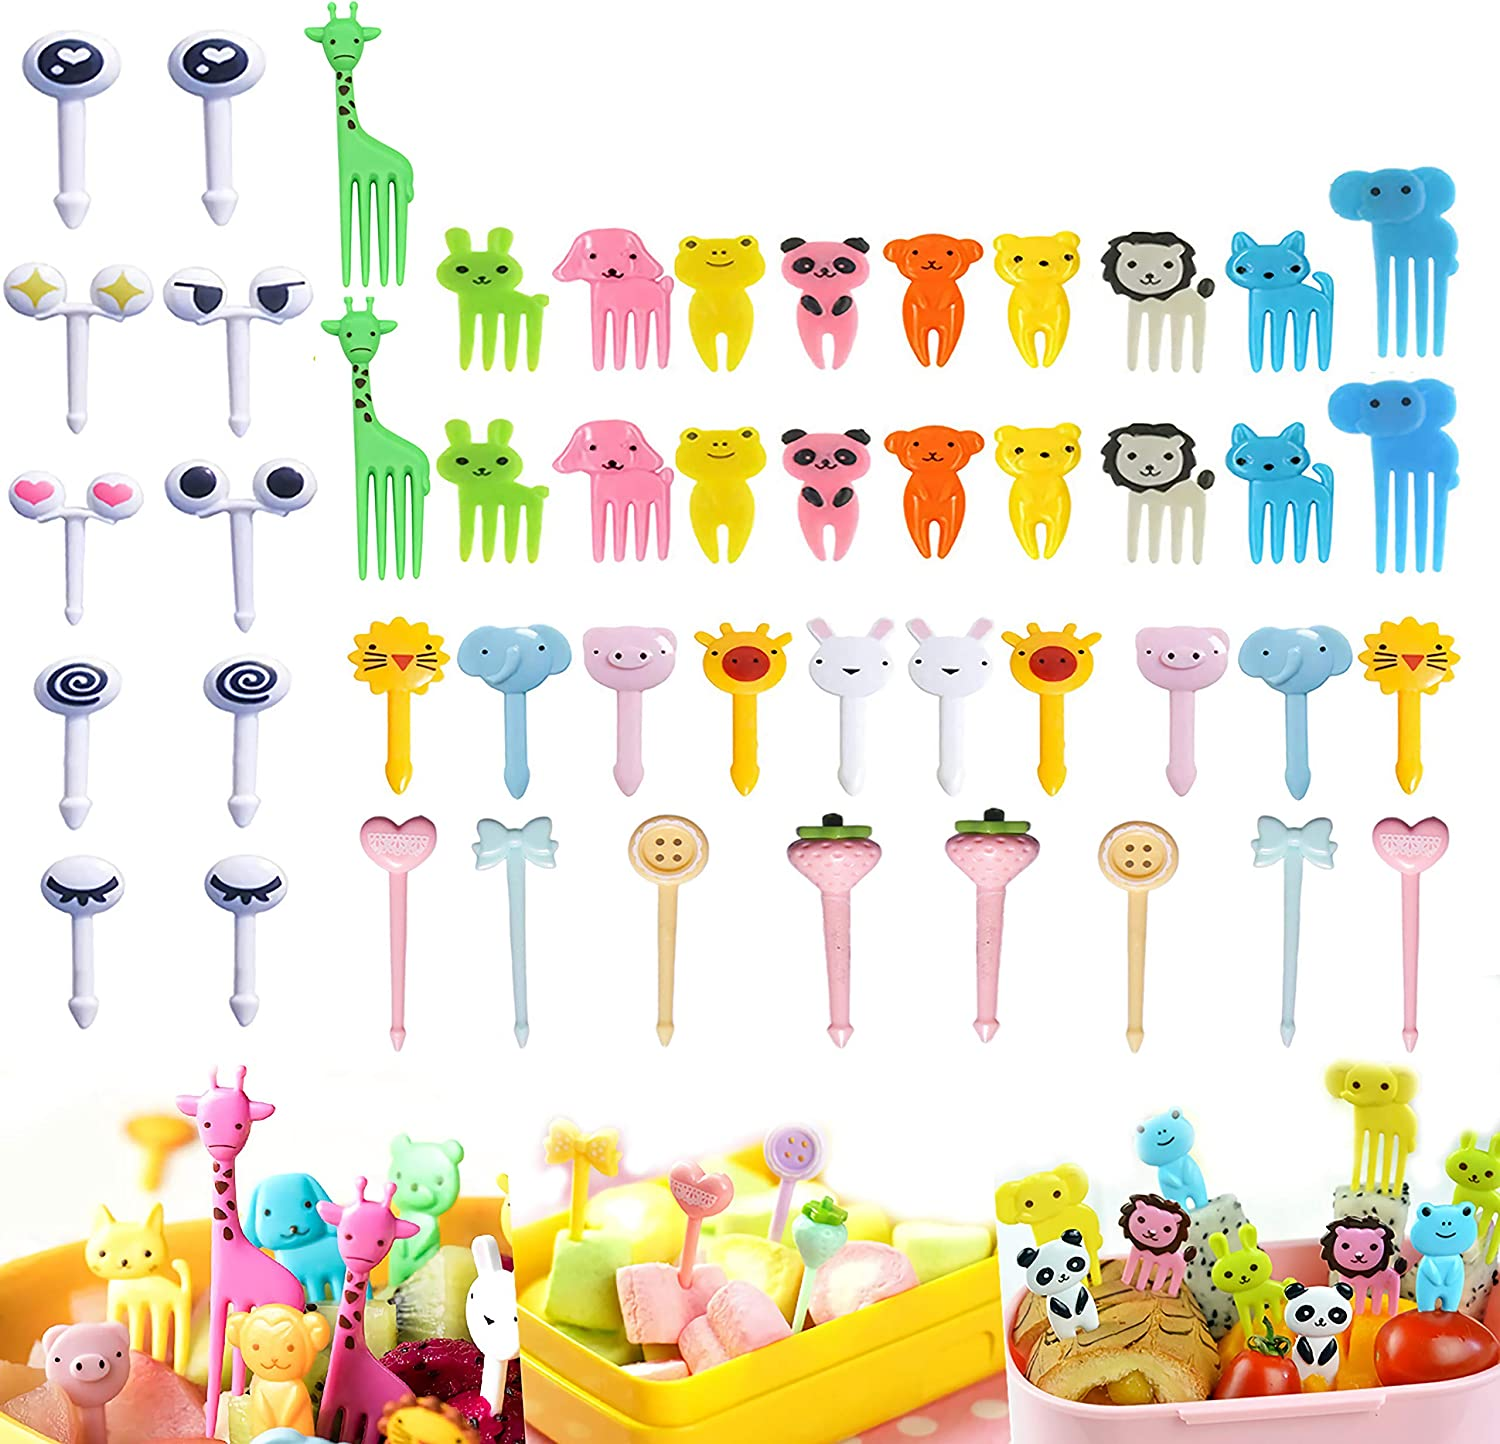 Animal Fruit Food Picks 48PCS, Bento Box Picks, LKAKA Mini Cartoon Animal Food Toothpicks, Lunch Bento Forks Picks for Kids (48PCS)